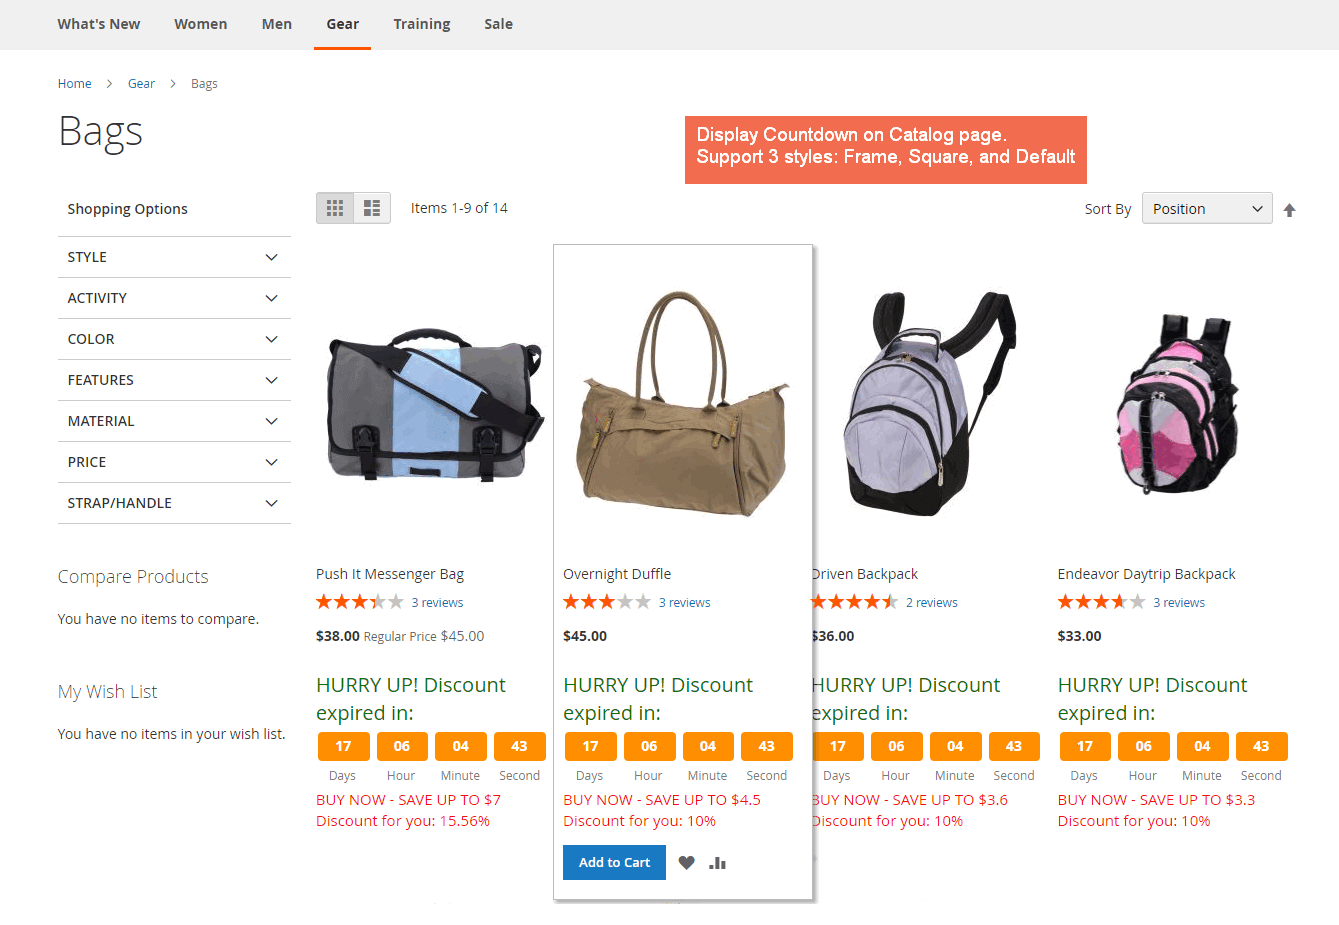 Displays countdown on catalog page